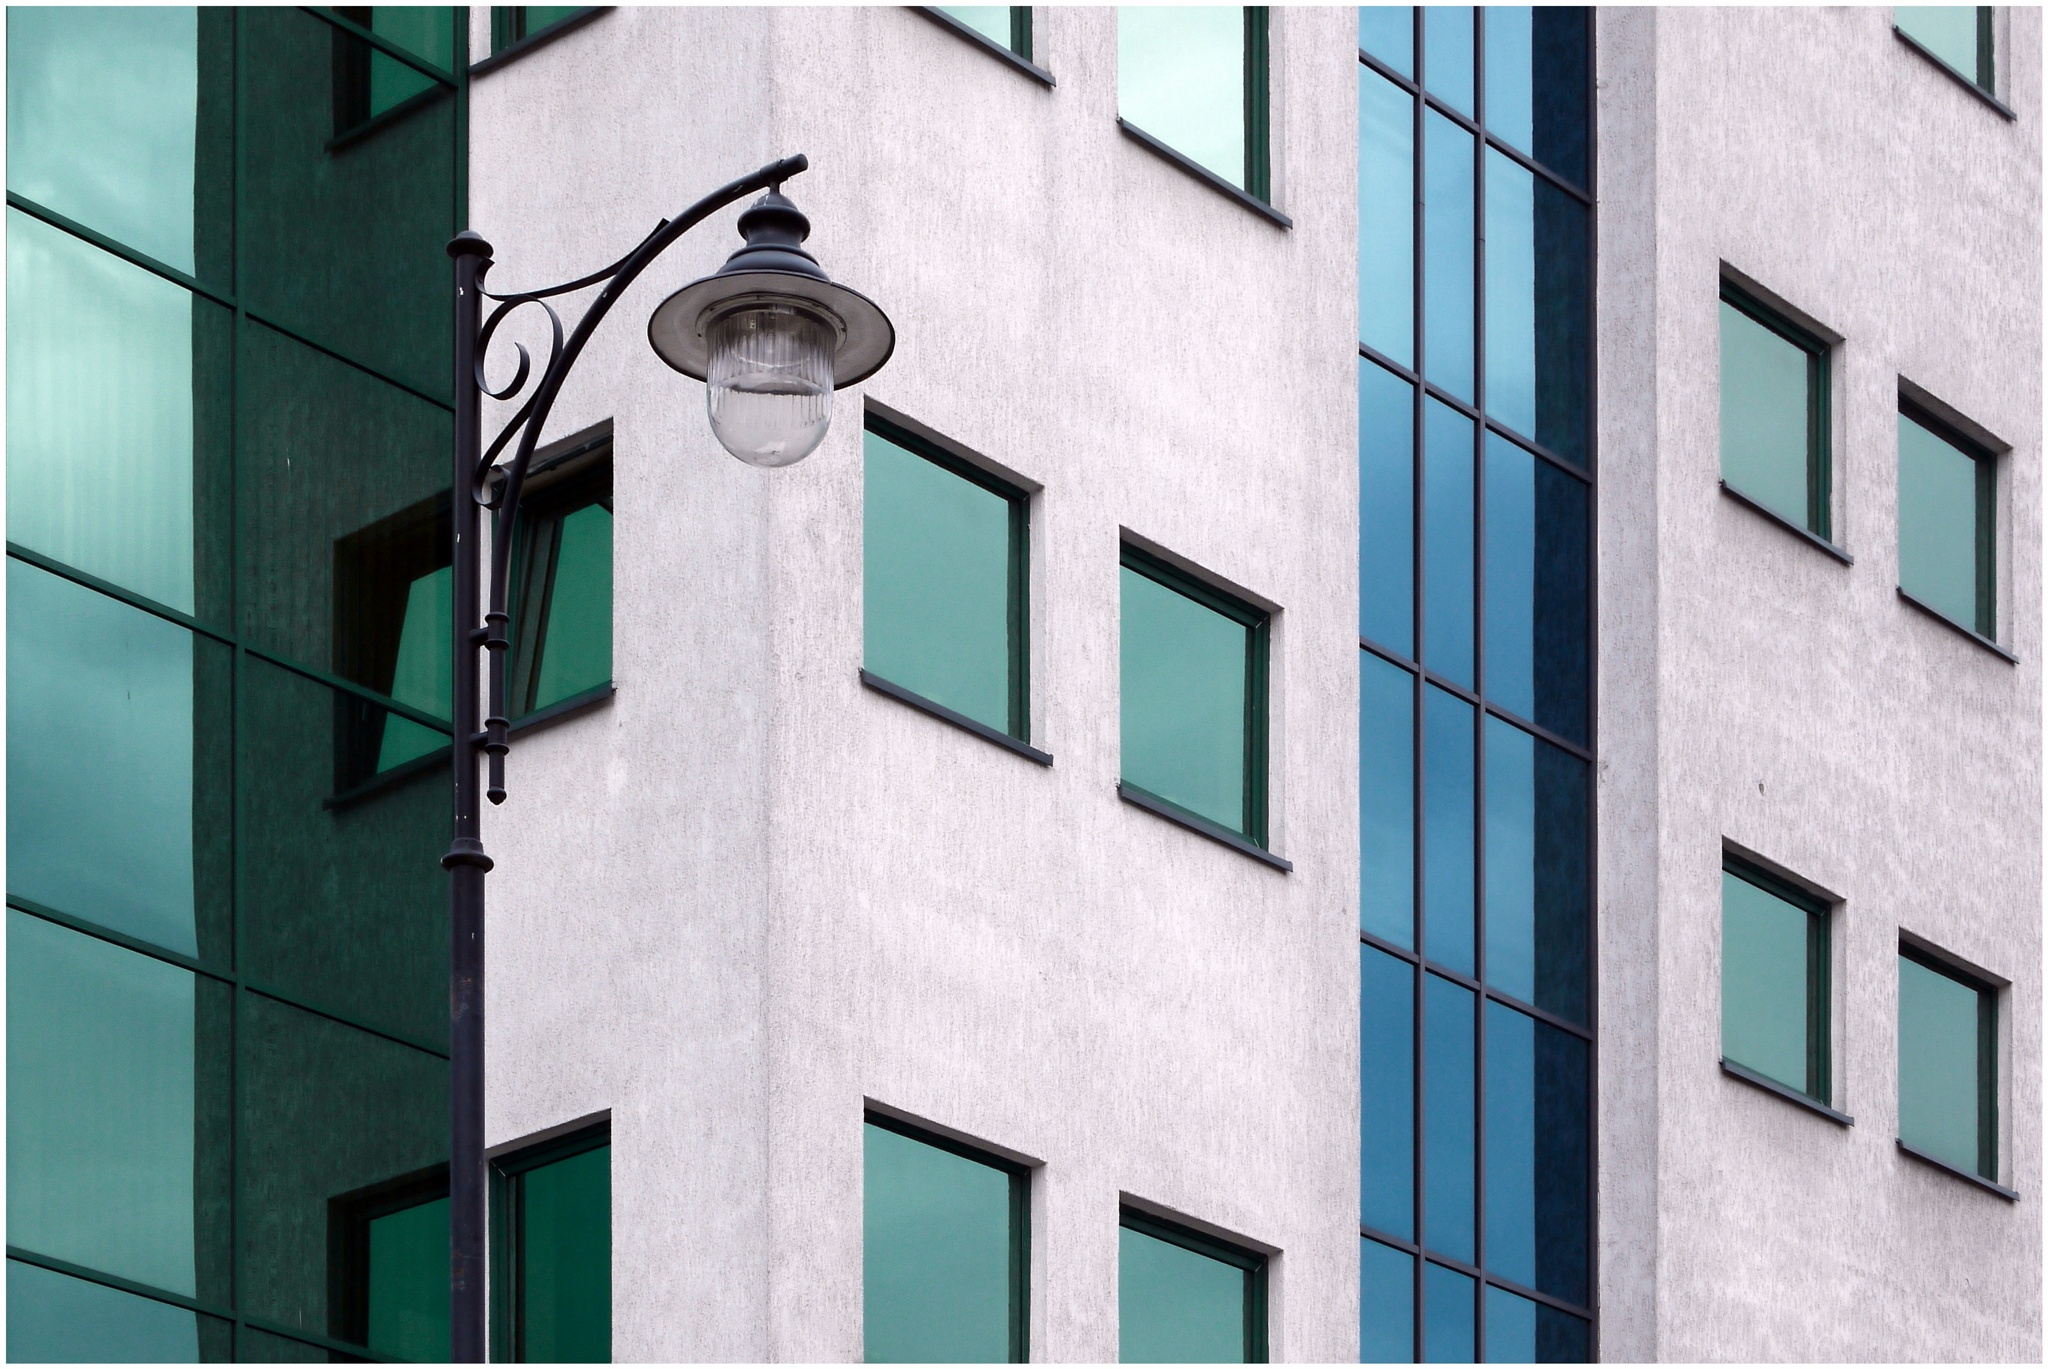 lamppost & windows in colours by ewa_no